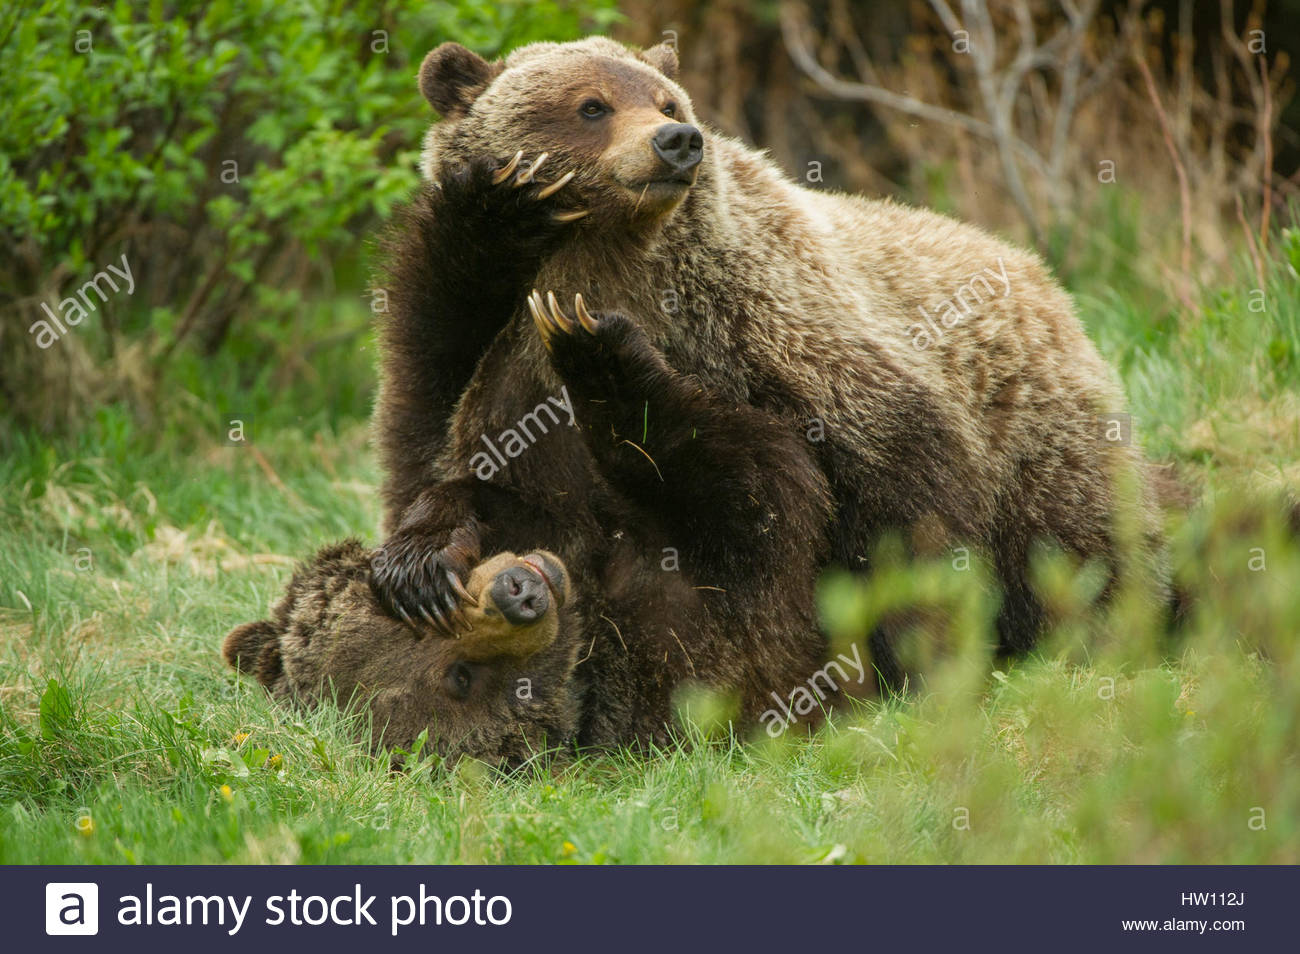 A grizzly bear cub pushes down with large paws on its mother's face. - Stock Image